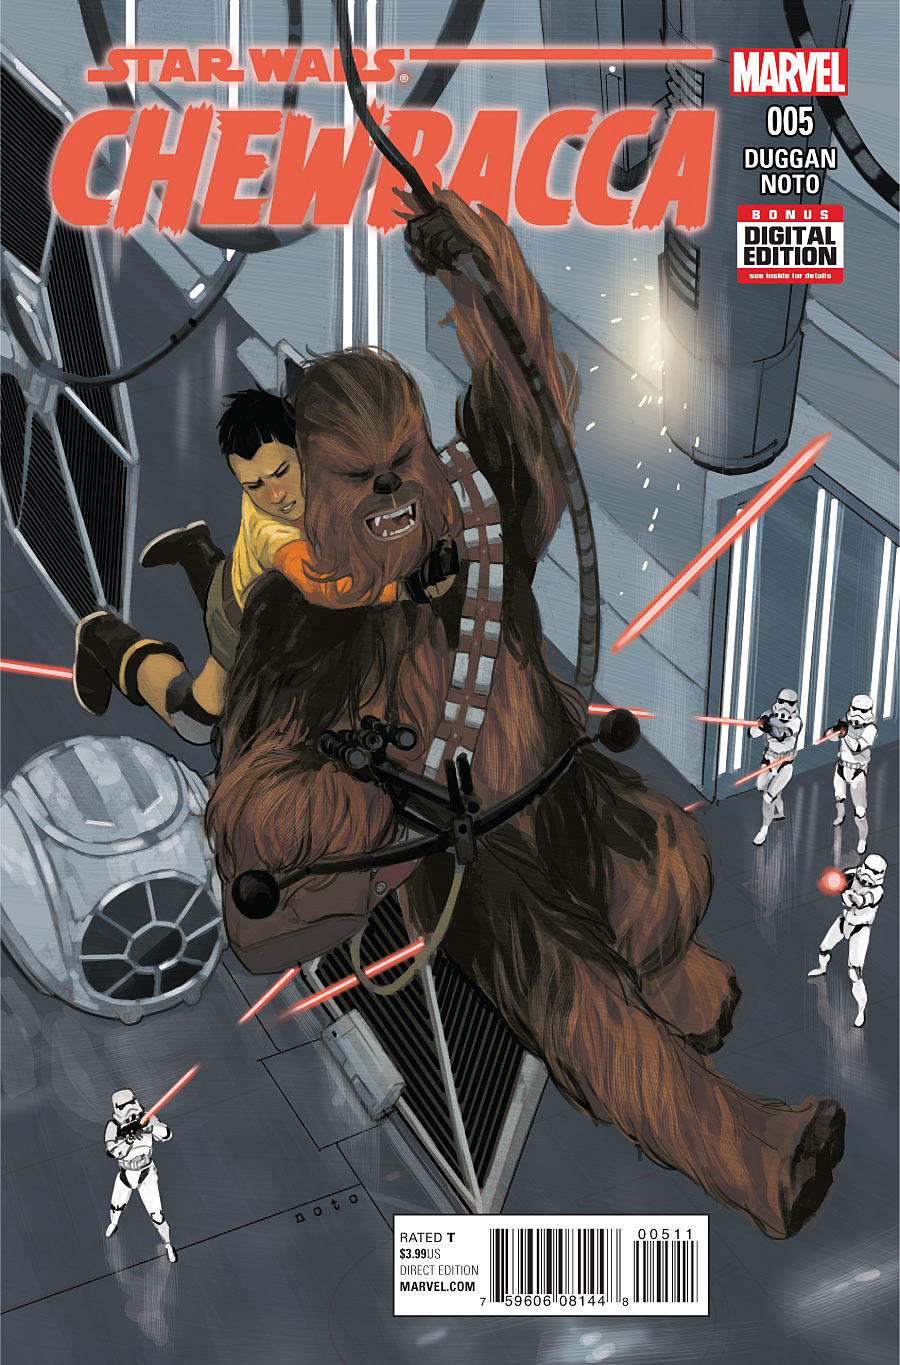 Star Wars - Chewbacca - Parte V - Marvel Comics